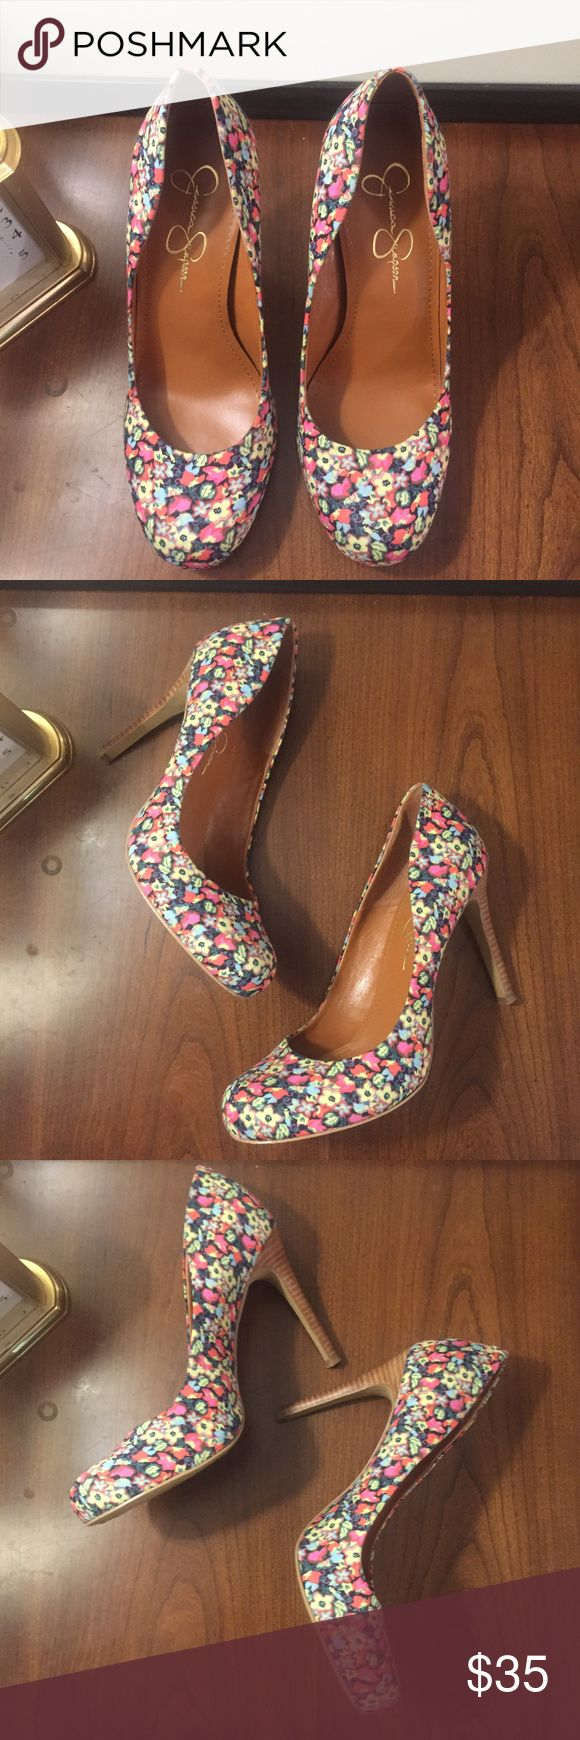 Jessica Simpson Given Floral Pump (8) Excellent condition.  No rips, stains, or tears.  Strike a stylish pose in this supple Jessica Simpson pump. The Given brings you a flower fabric upper with a 1 inch platform and 4 1/2 inch heel height. You can't go wrong with this genius style, you'll look amazing all day! Shoe Details:      Fabric Upper     Man Made Sole     Made In China     This Shoe fits true to size. Jessica Simpson Shoes Heels